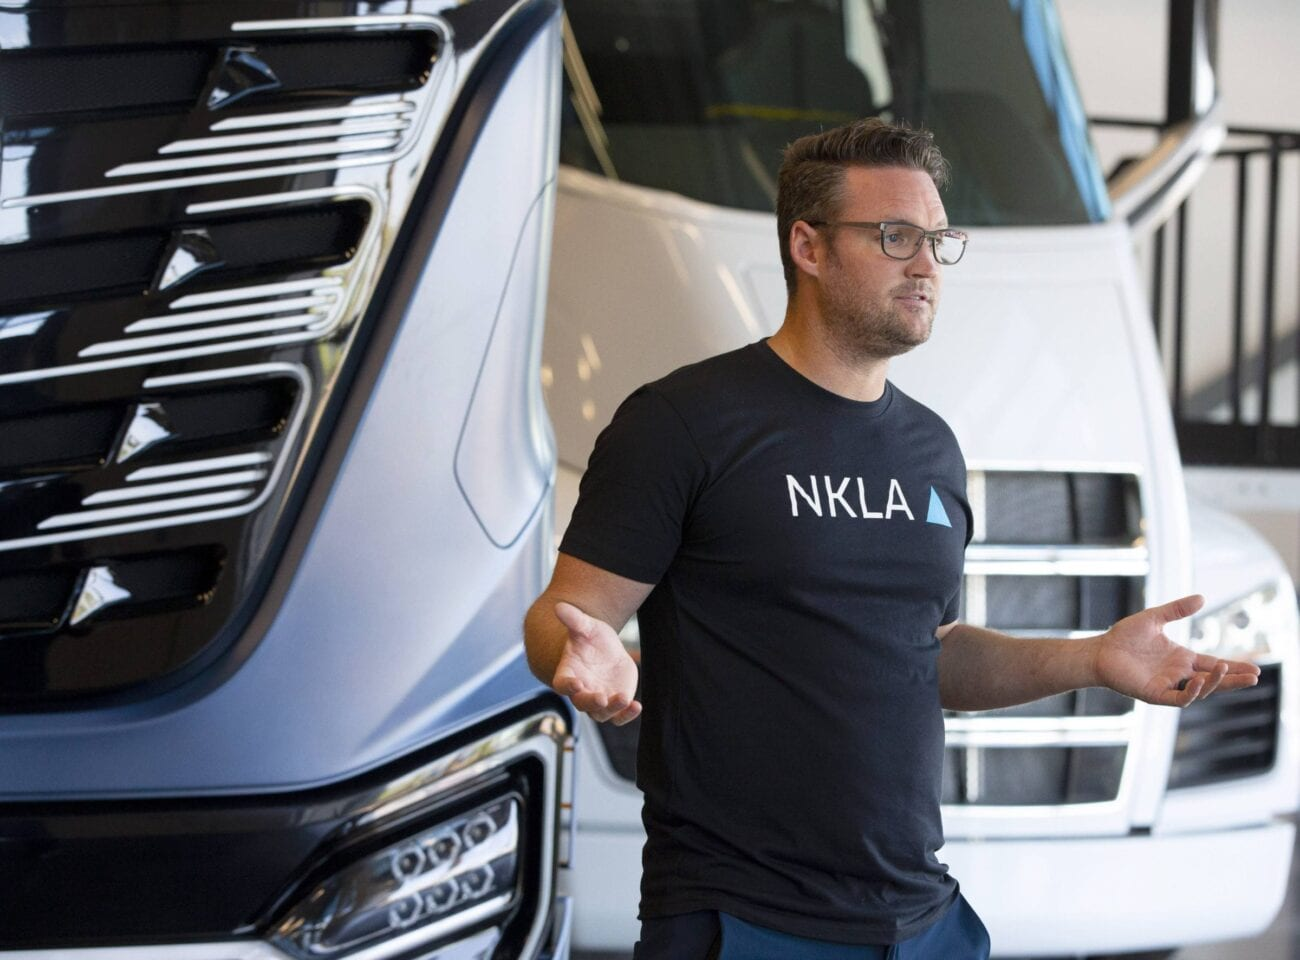 Nikola founder Trevor Milton resigned on Sunday. Could the recent #MeToo claims be impacting stock price? Let's find out.